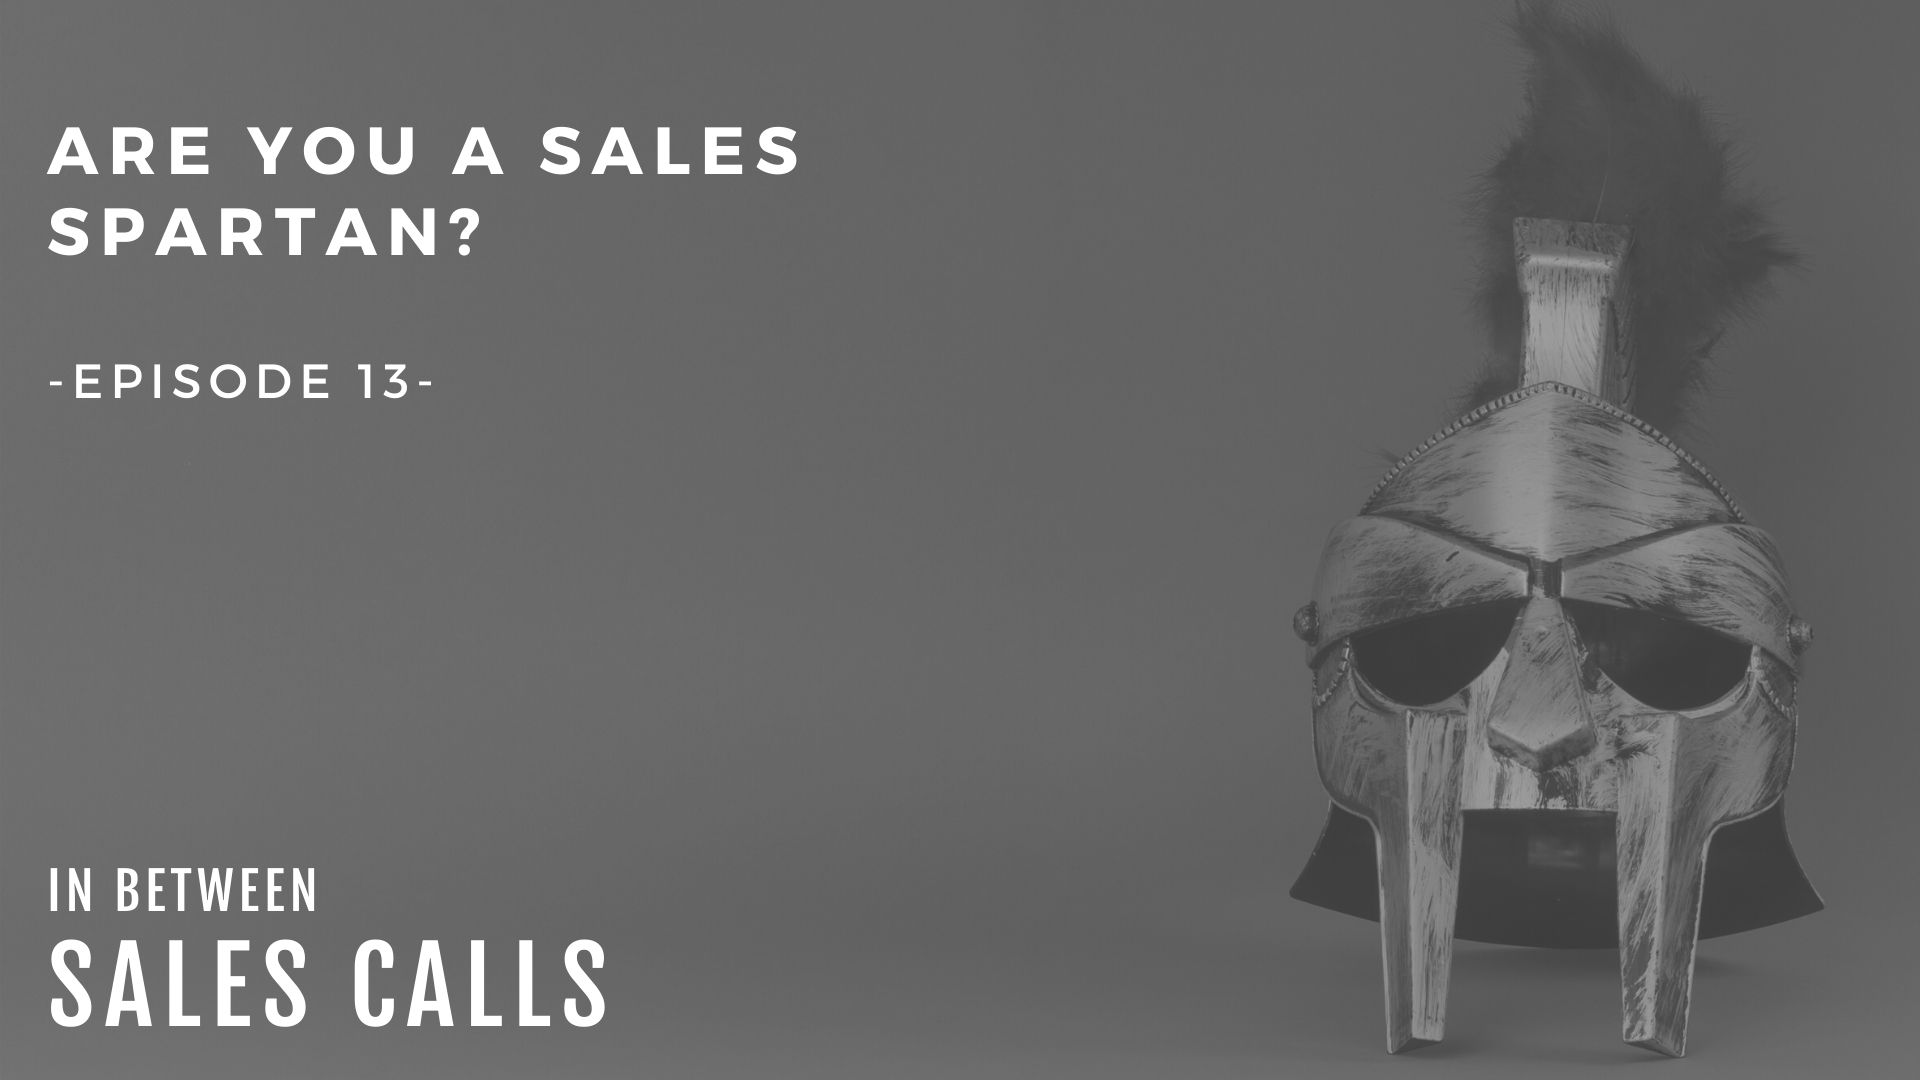 are-you-a-sales-spartan-modern-sales-training-in-between-sales-calls-podcast